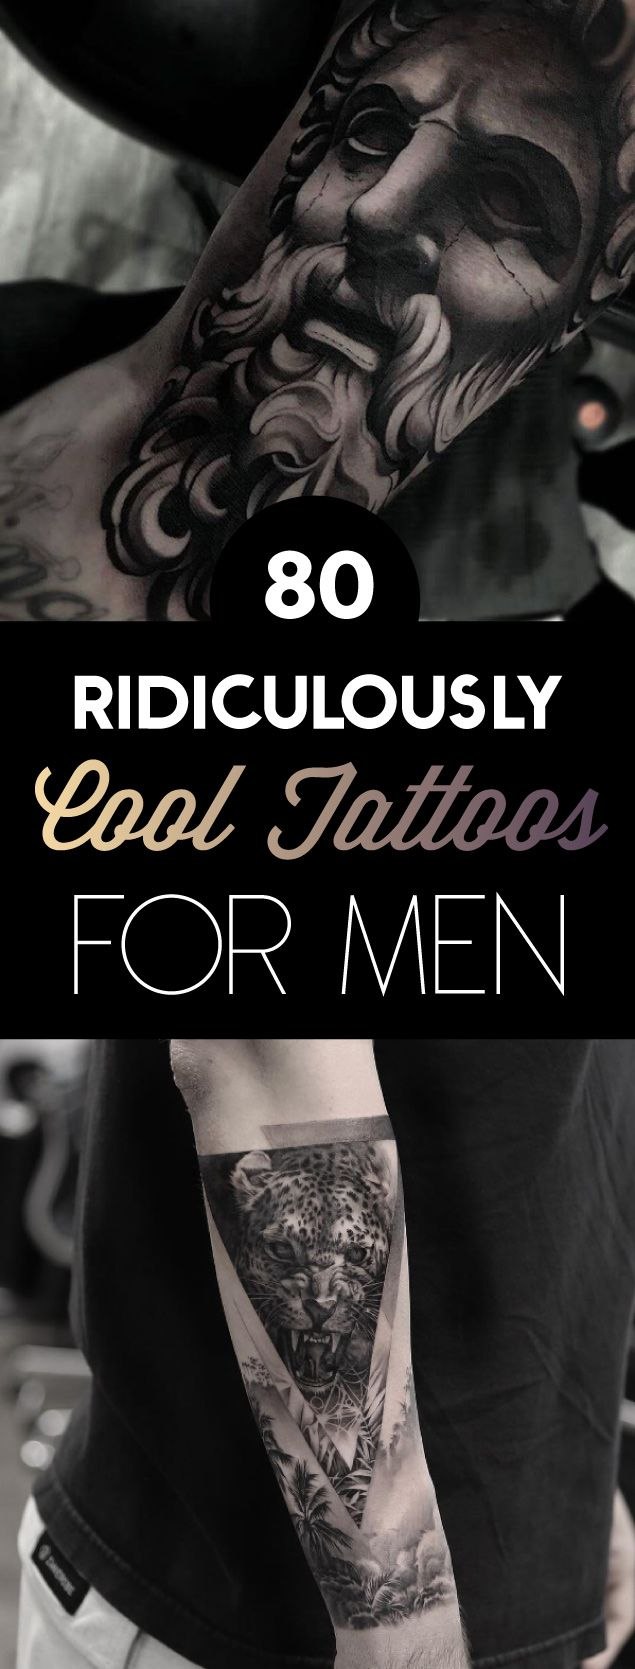 80 Ridiculously Cool Tattoos For Men